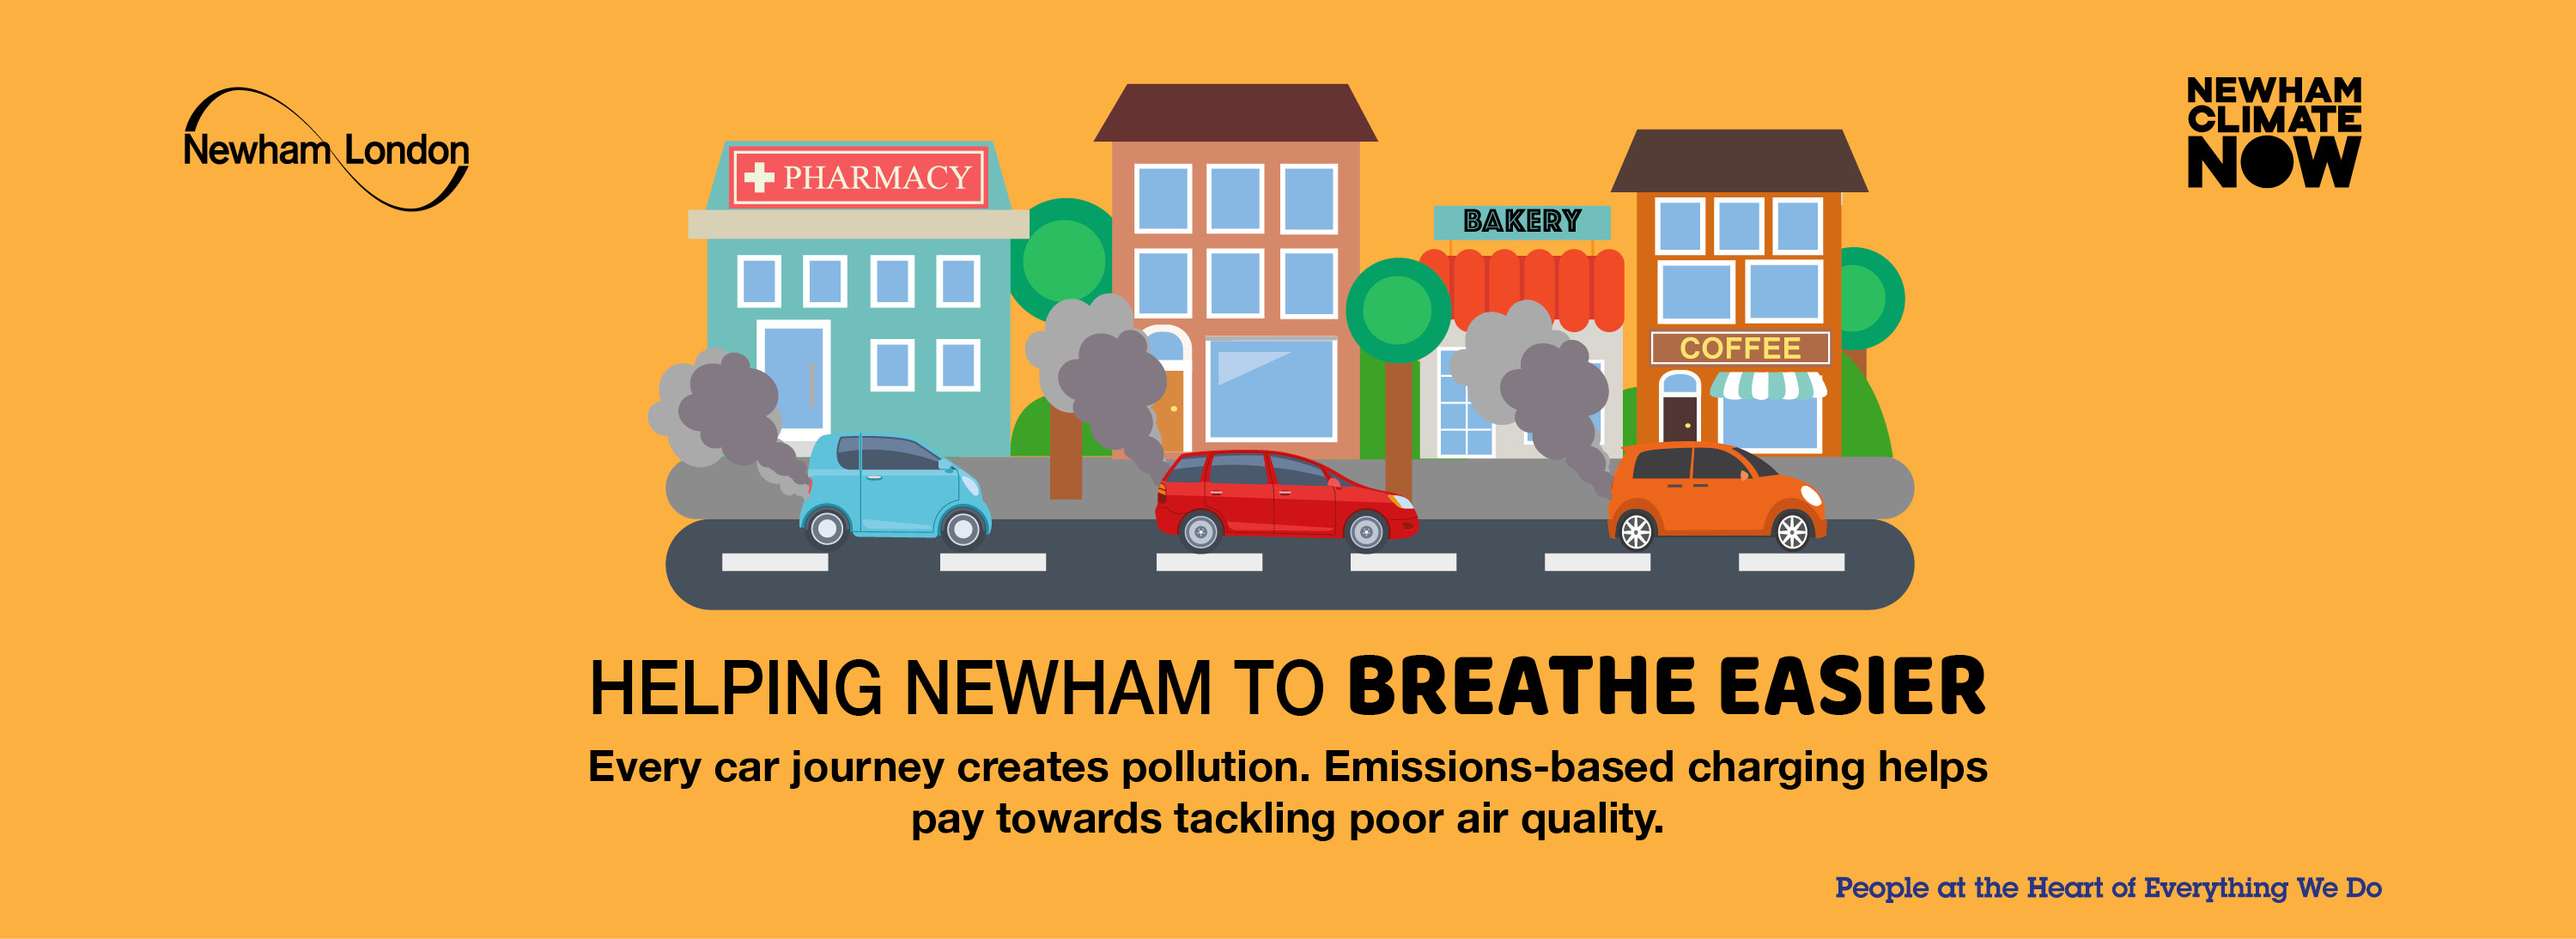 Every car journey creates pollution. Emissions-based charging helps pay towards tackling poor air quality.